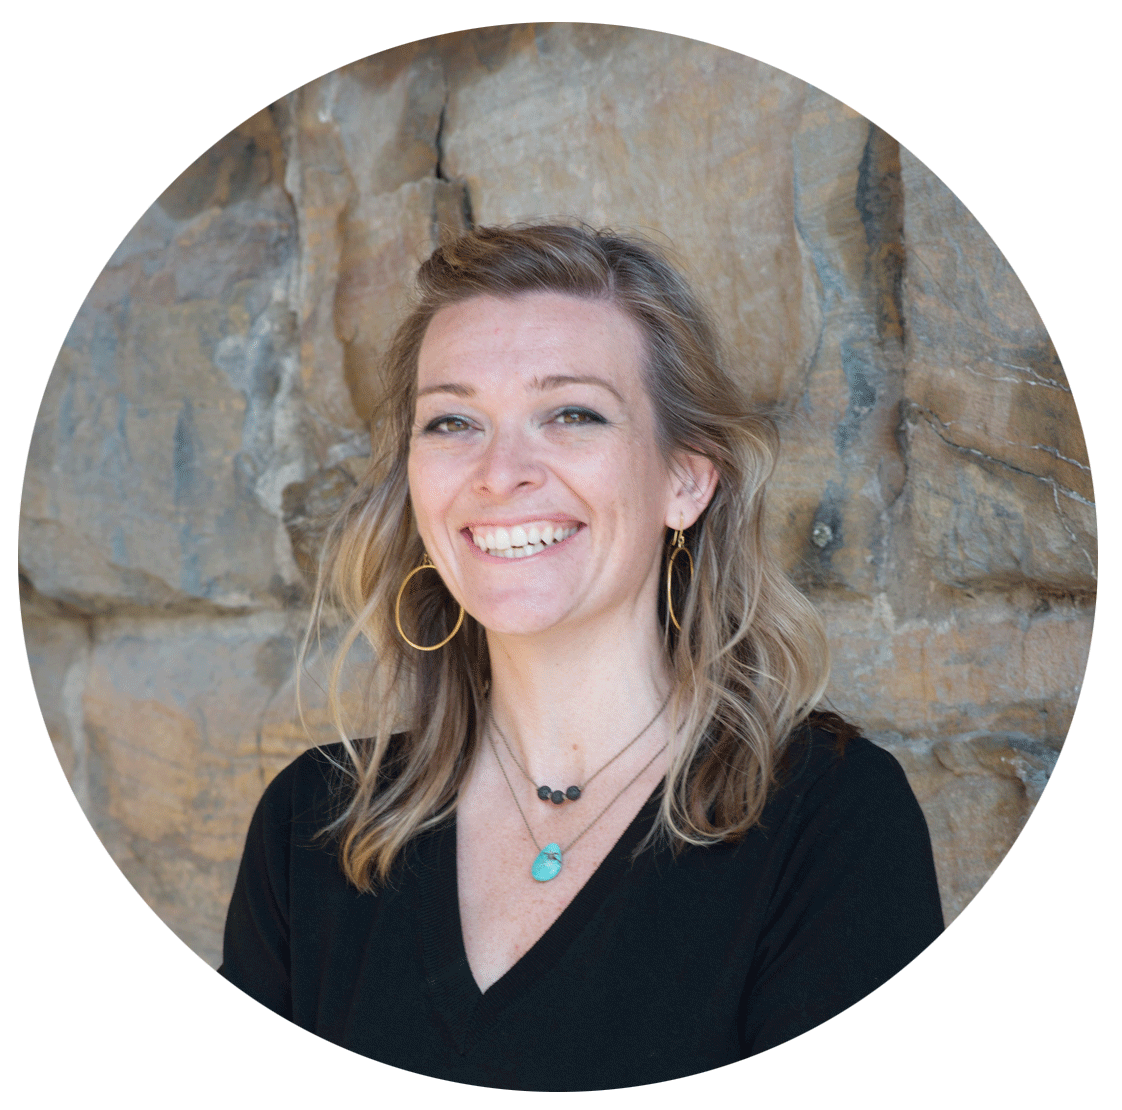 Jeni Spring, LMT - Owner of Heeling Sole Barefoot Massage, Co-owner of the Center for Barefoot Massage, Texas Ashiatsu Instructor, Paddle Board Racer